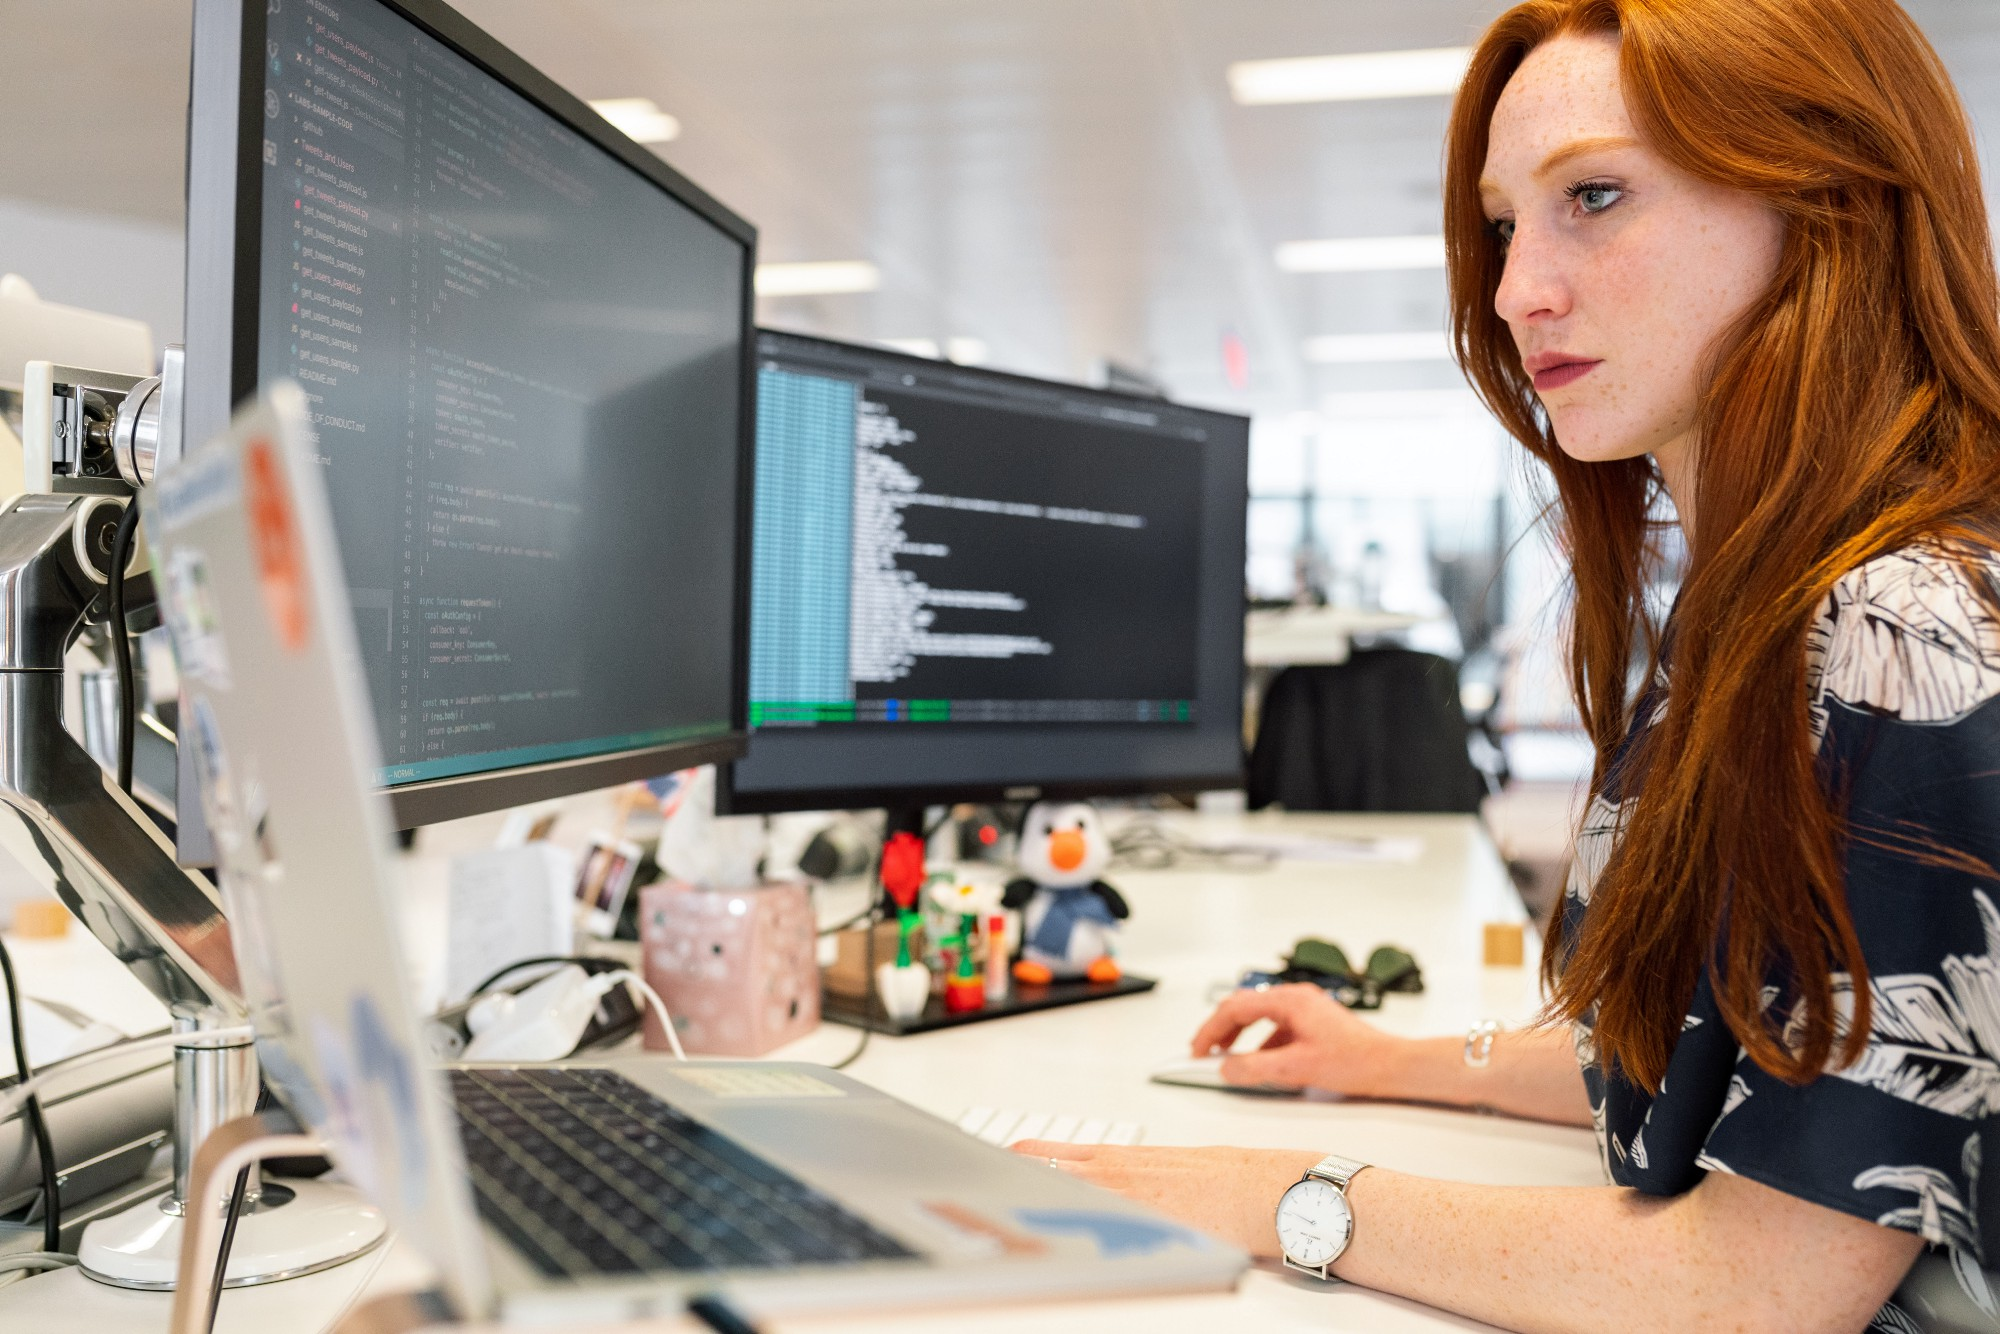 Woman sitting at desk in front of screens with computer code